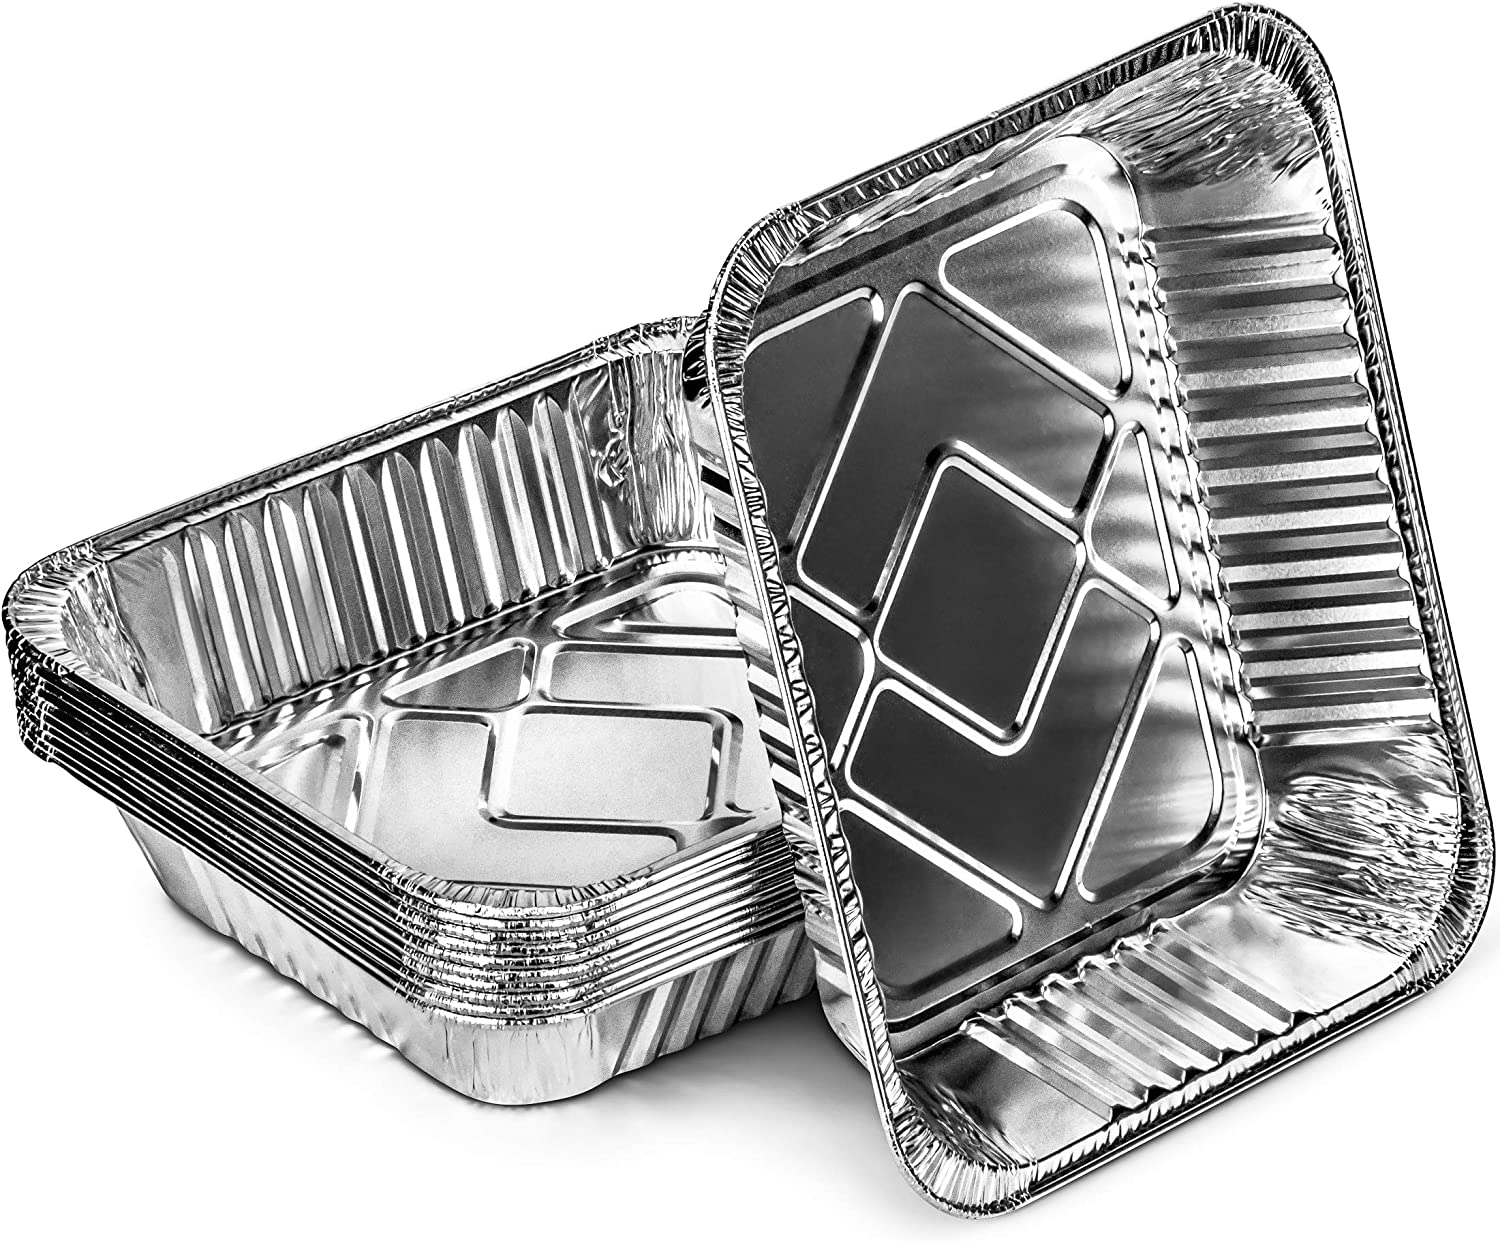 DecorRack 10 Aluminum Pans 9 x 13 Half-Size Steam Table Deep Heavy Duty Aluminum Pans Disposable Food Storage Foil Baking Pan for Cooking, Heating, Storing, Meal Prep (10 Pack)